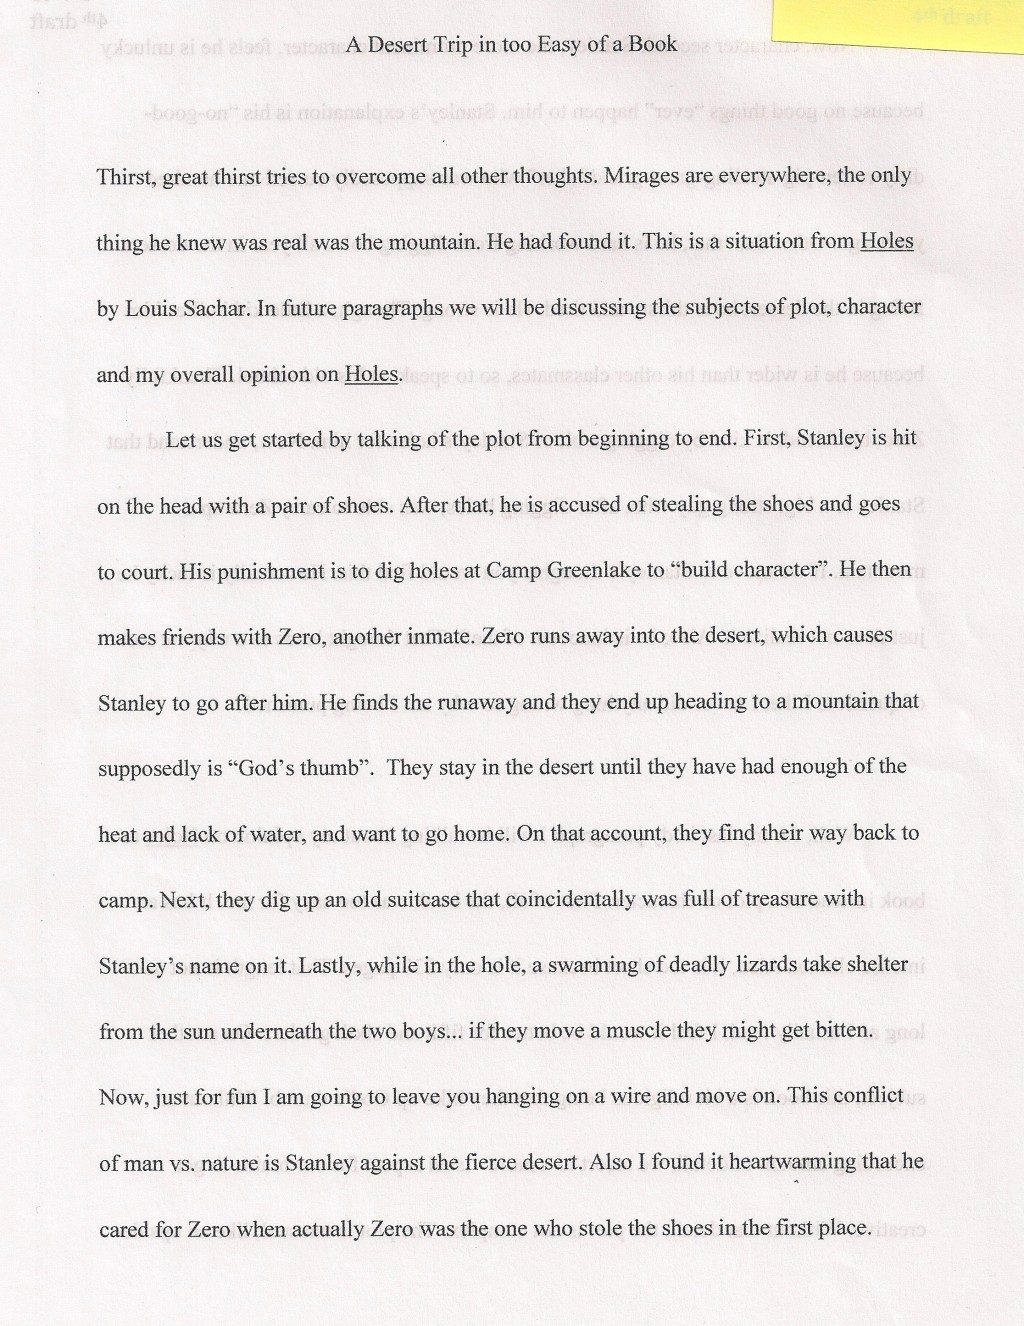 002 6th Grade Essay Topics Example Desert Surprising Reflective Narrative Writing Prompts Science Large